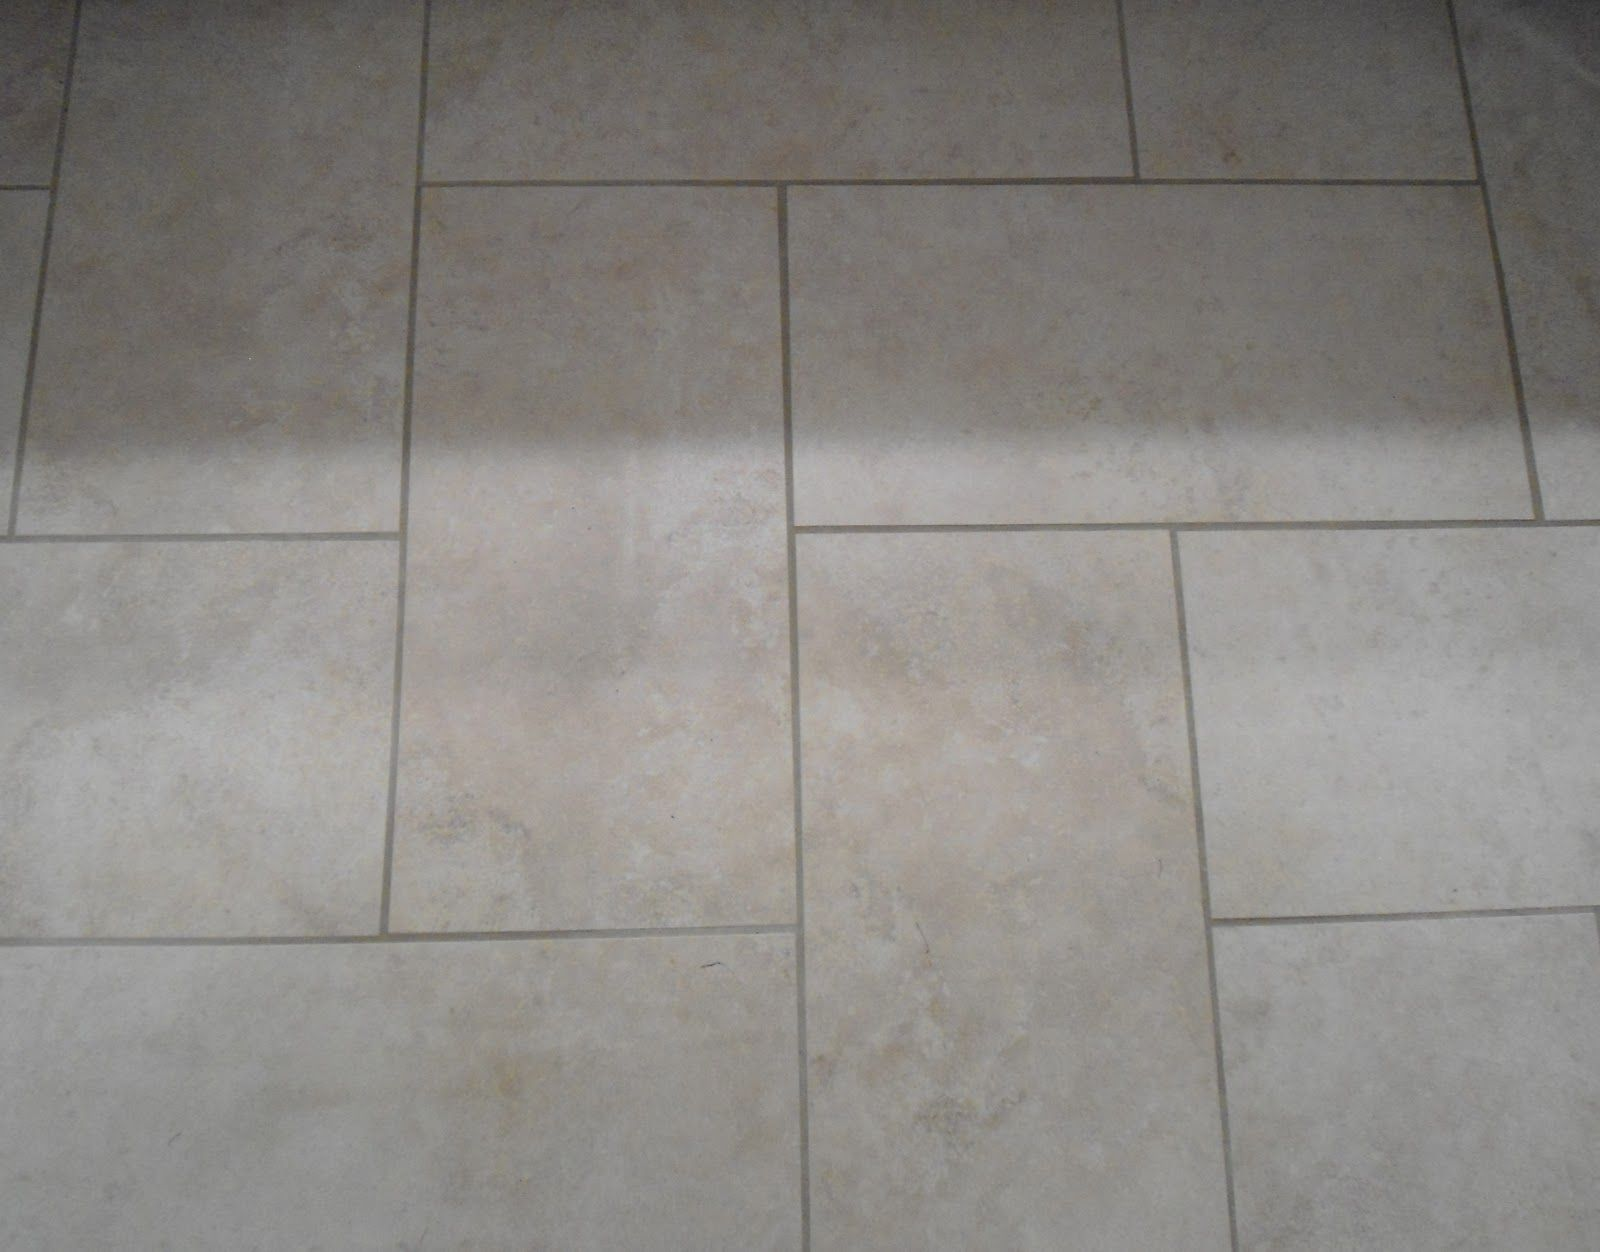 Pictures Of Different Tile Patterns 12 X 24 Plank Tiles